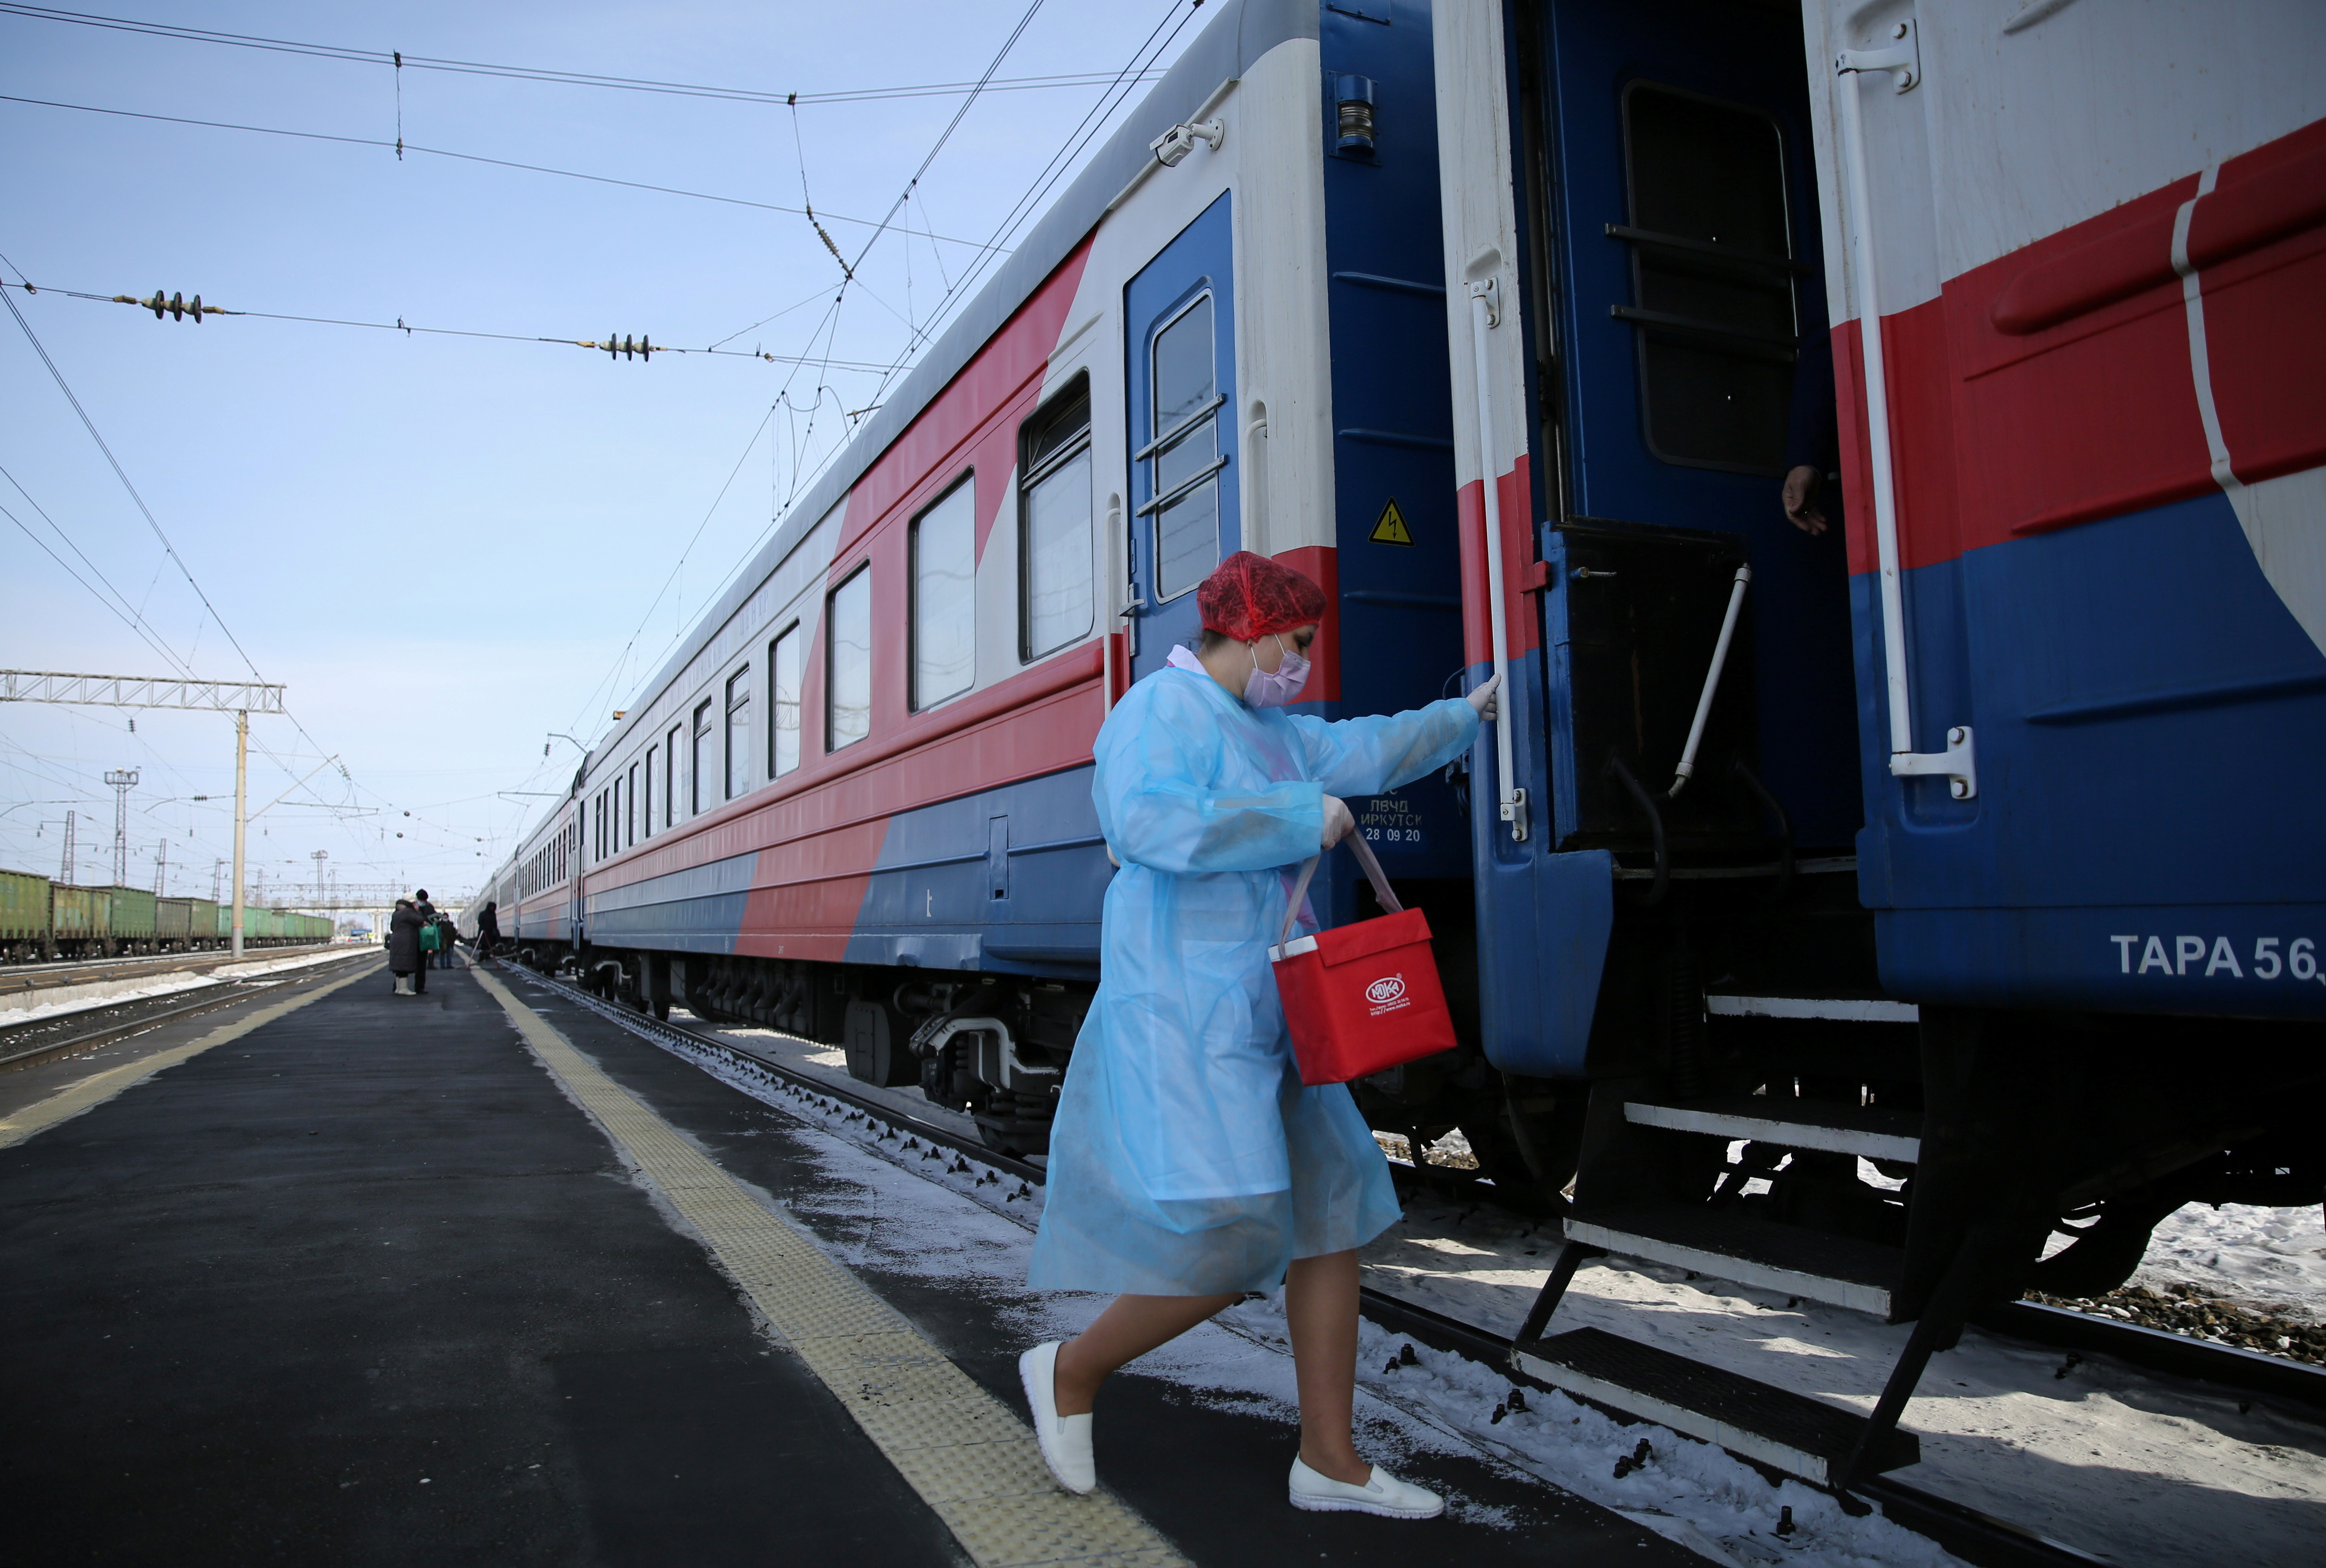 A medical worker carries a bag containing doses of the Sputnik V (Gam-COVID-Vac) vaccine against the coronavirus disease (COVID-19) as she enters a carriage of the Academician Fyodor Uglovmedical train, at a railway station in the town of Tulun in Irkutsk Region, Russia March 16, 2021. REUTERS/Evgeny Kozyrev - RC2GCM96JYV1